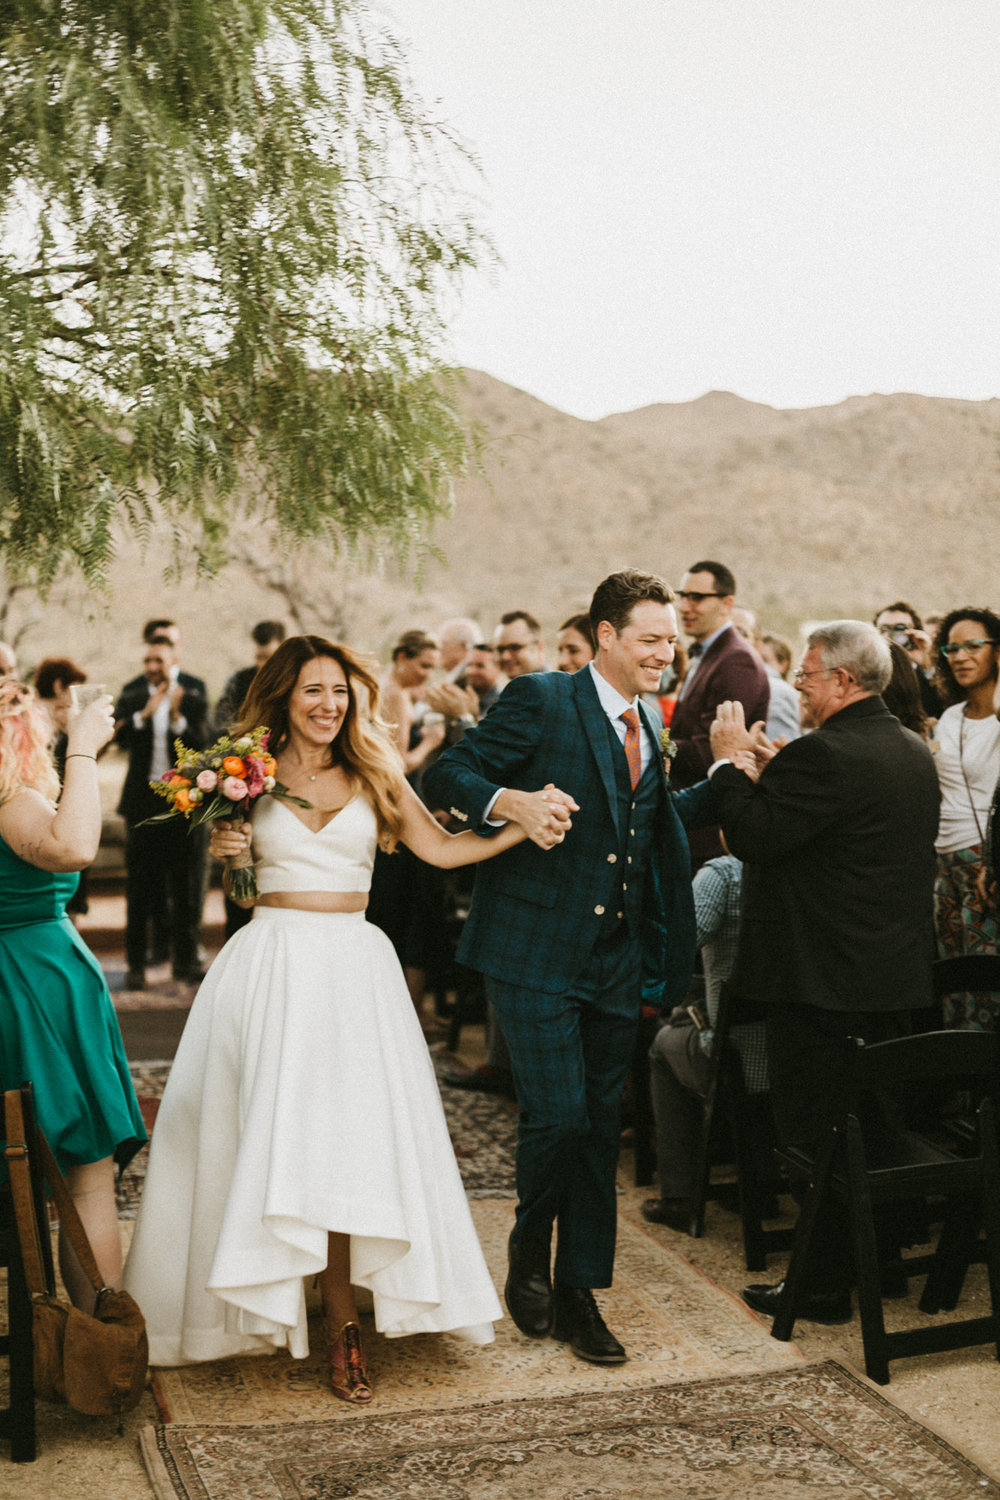 sacred_sands_joshua_tree_wedding-63.jpg